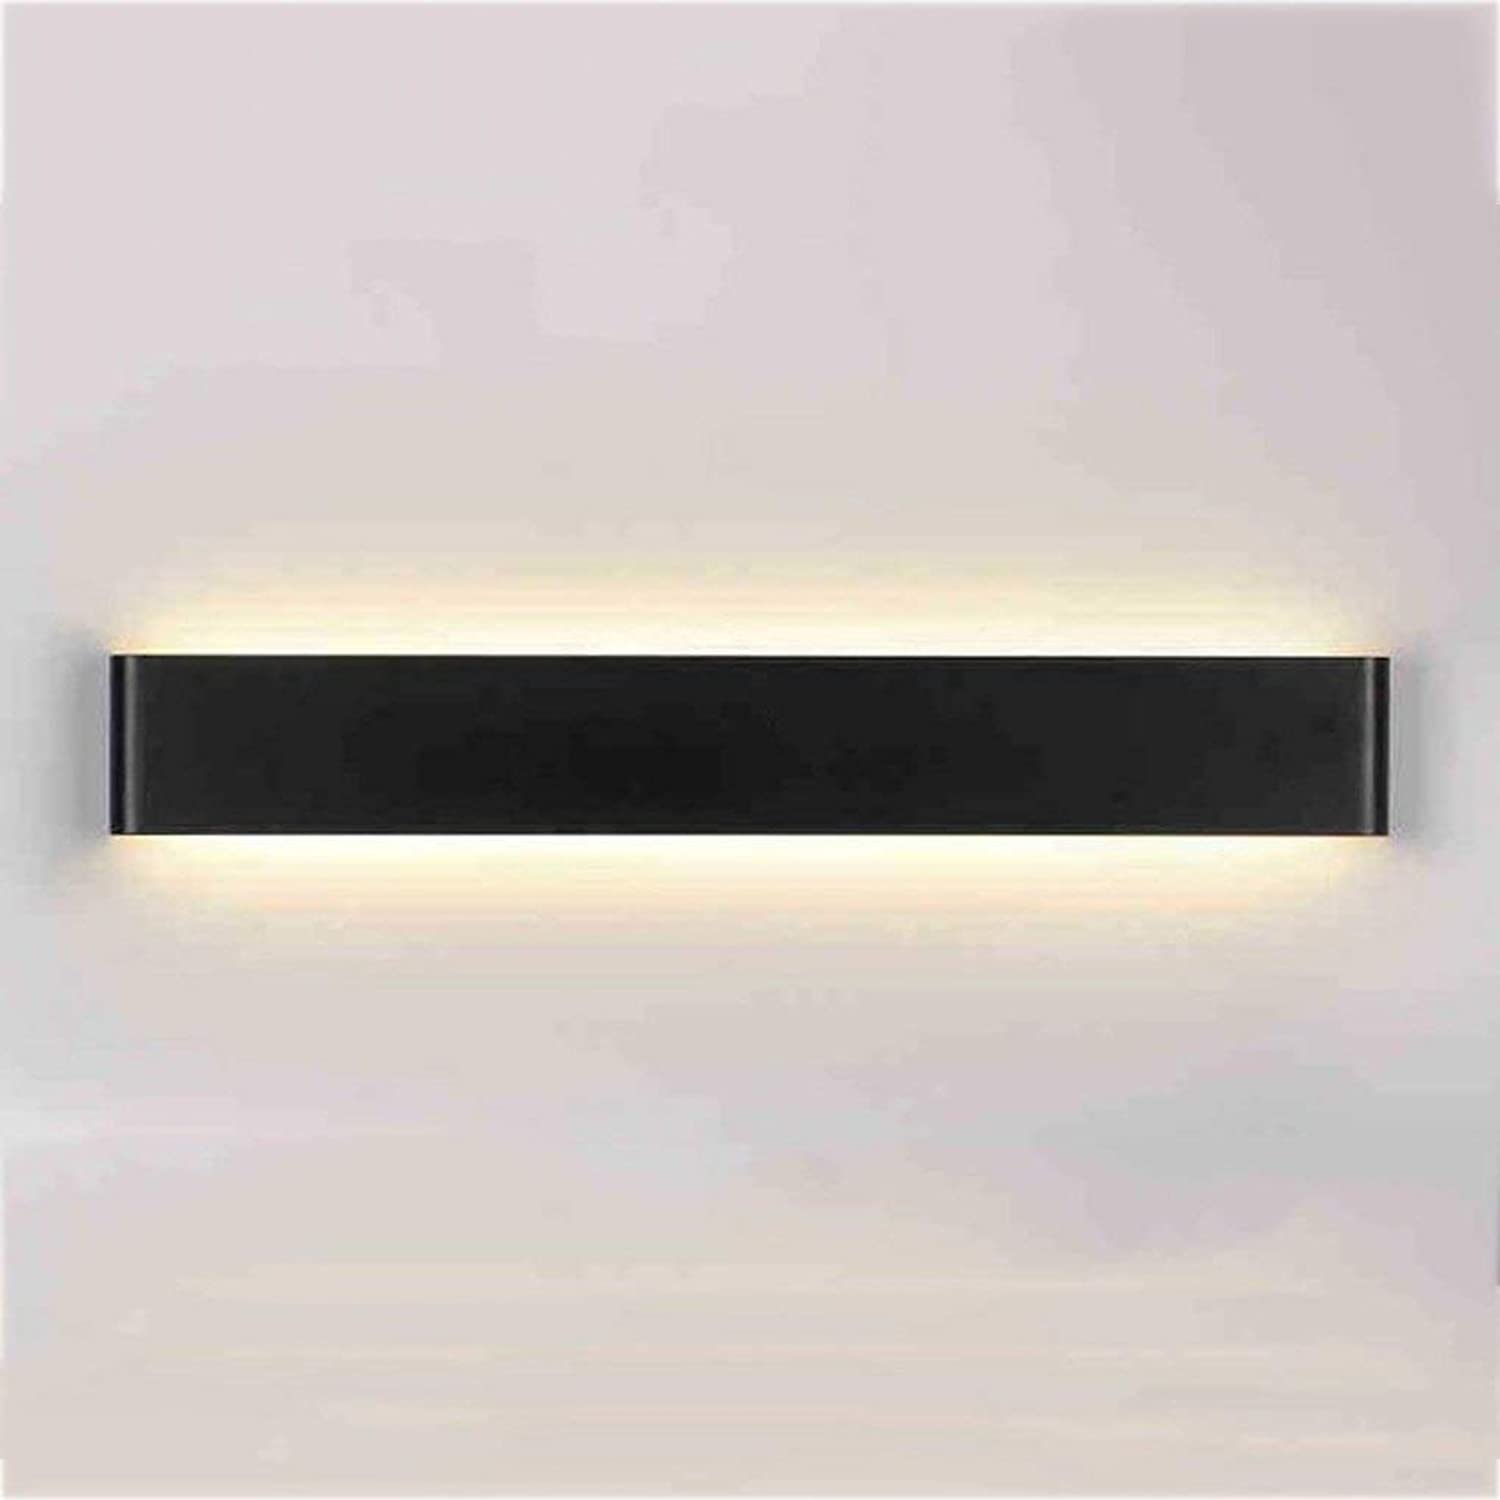 JBP Max Mirror Light Bad Light Bad LED schwarz Aluminium Strip Wand Lampe Spiegelfront Spiegelschrank Licht,WarmWeiß,20W 61Cm